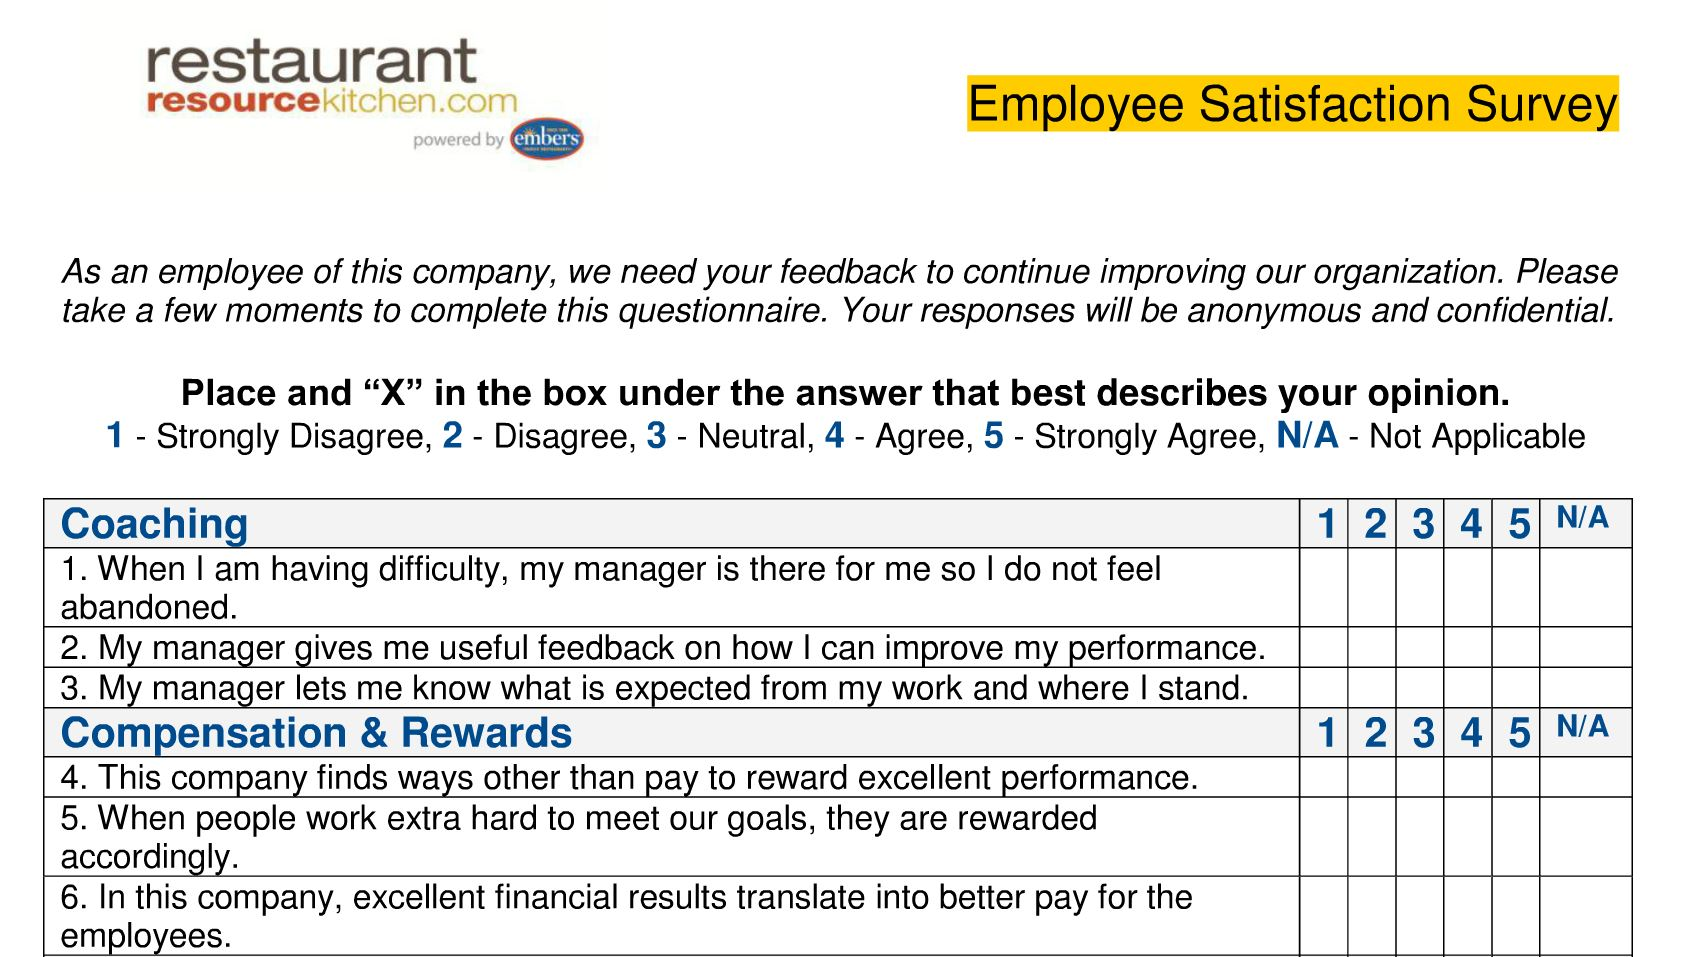 performance magazine employee satisfaction survey restaurant